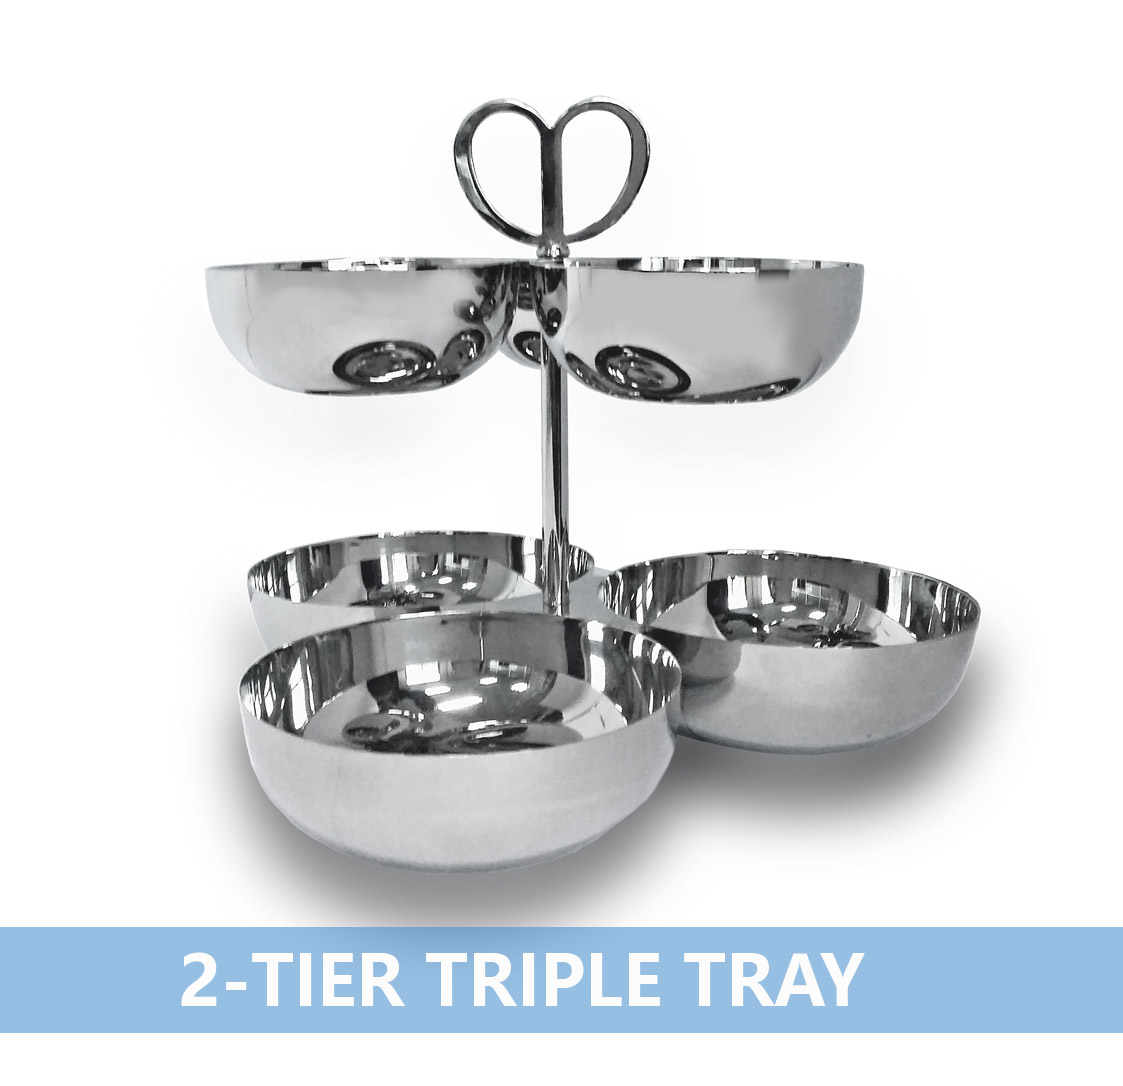 兩層三格碗2-tier Triple Tray